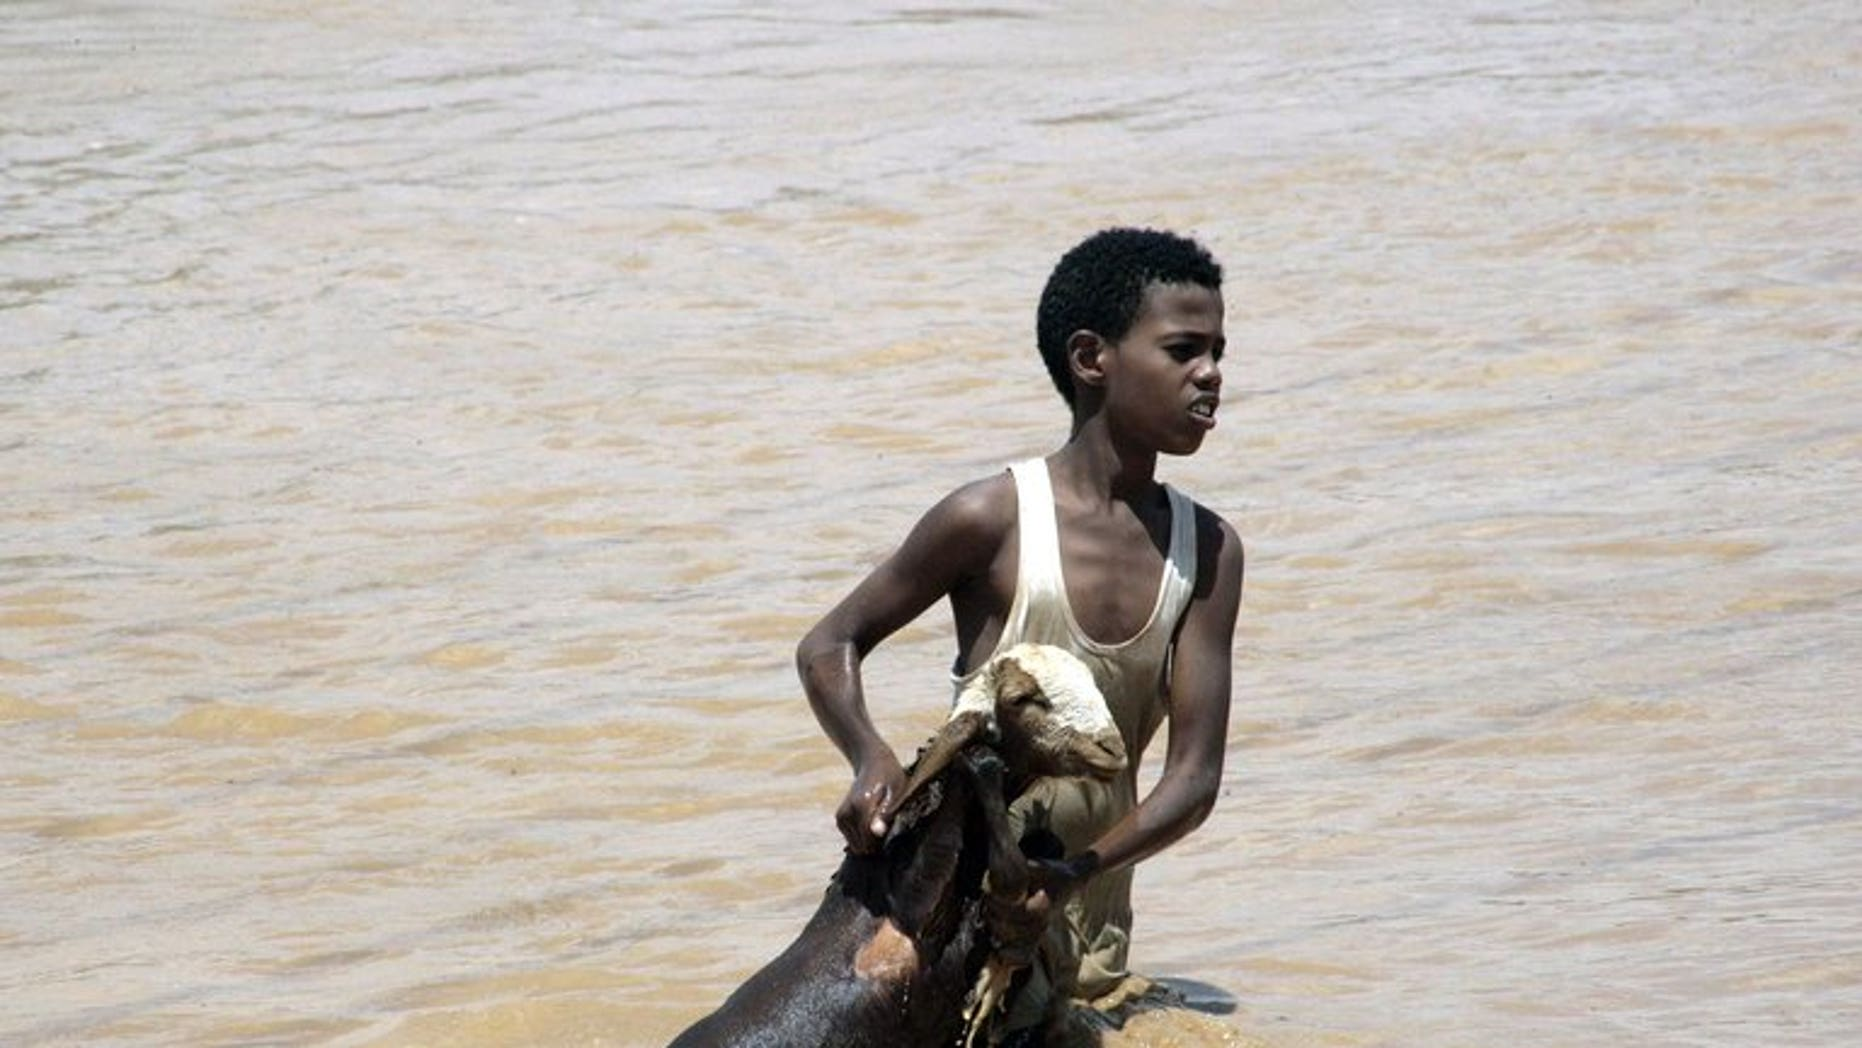 A boy holds a goat out of flood waters as he makes his way to higher land on August 3 in Khartoum. More flooding is expected in Sudan, the country's chief weather forecaster warned on Thursday, after severe rains have killed 53 people and affected about 200,000.